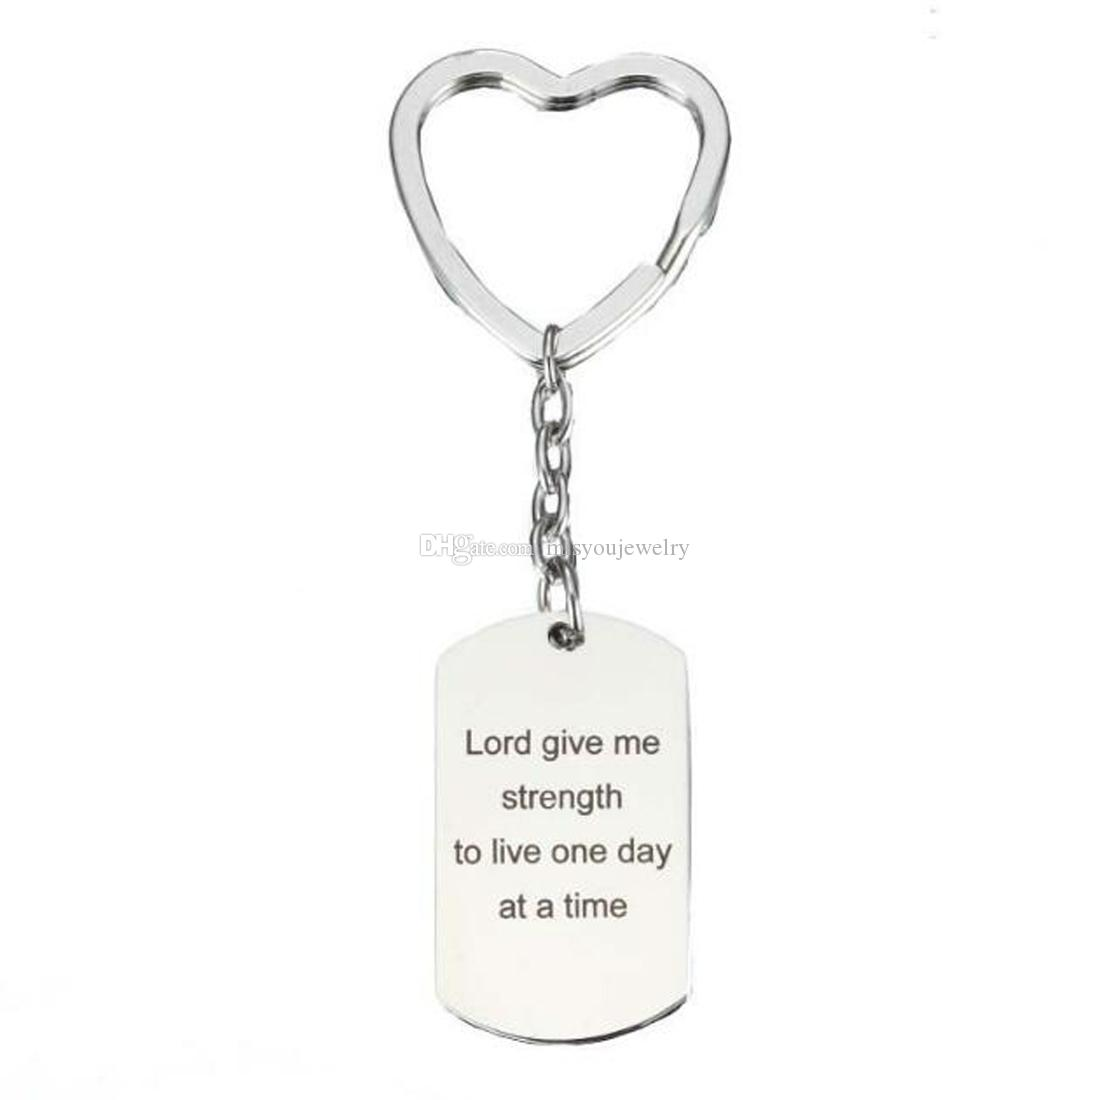 Fashion jewelry accessories Silver fine Lord give me strength to live one day at a time Keychain, Inspirational Keychain